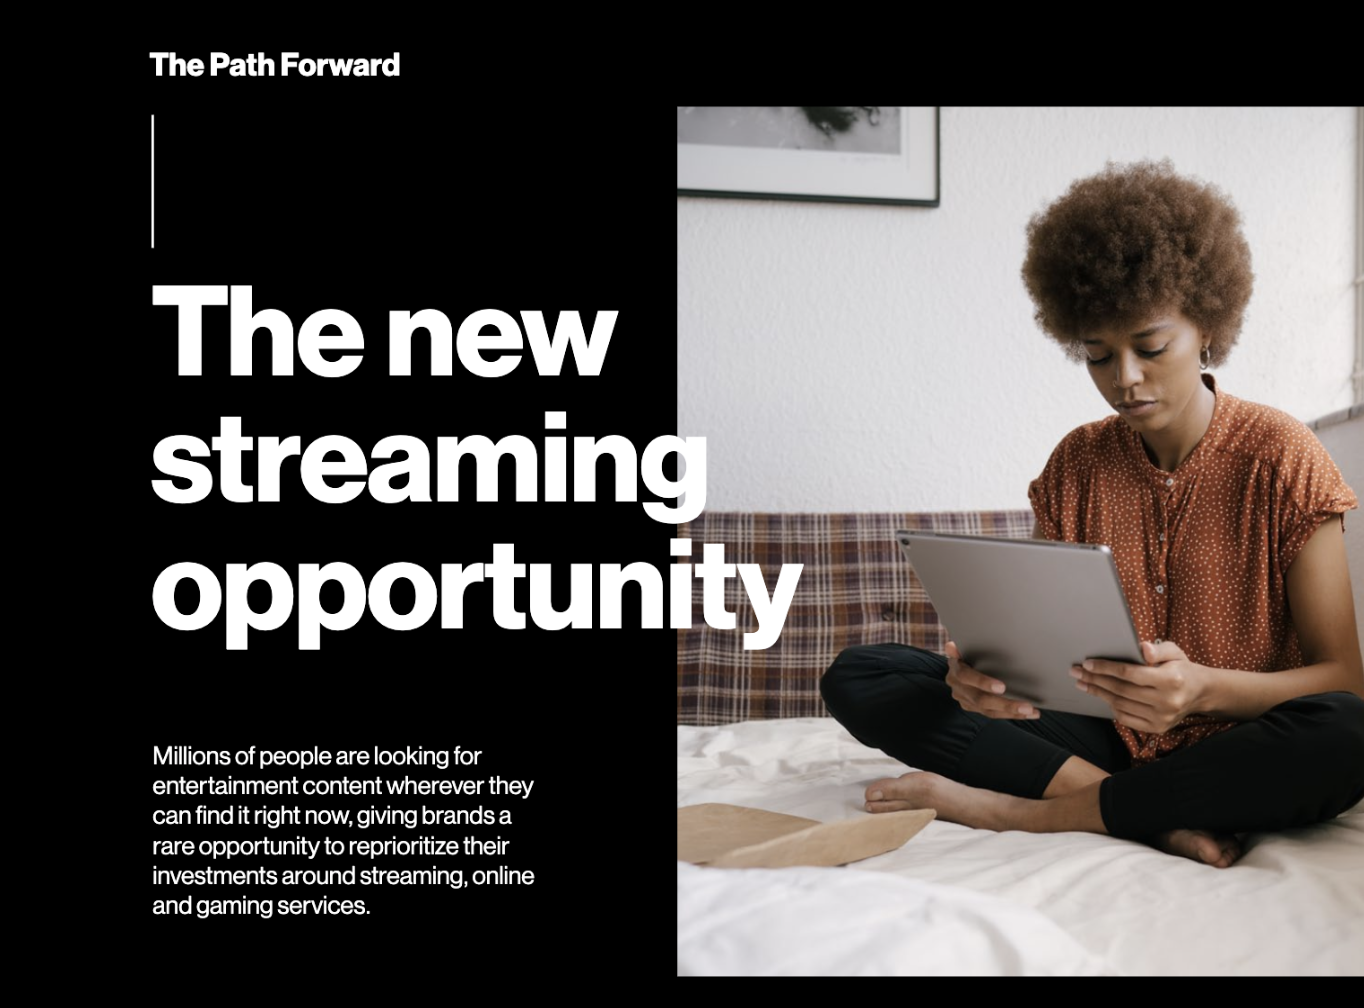 The Future of Streaming - The New Opportunity